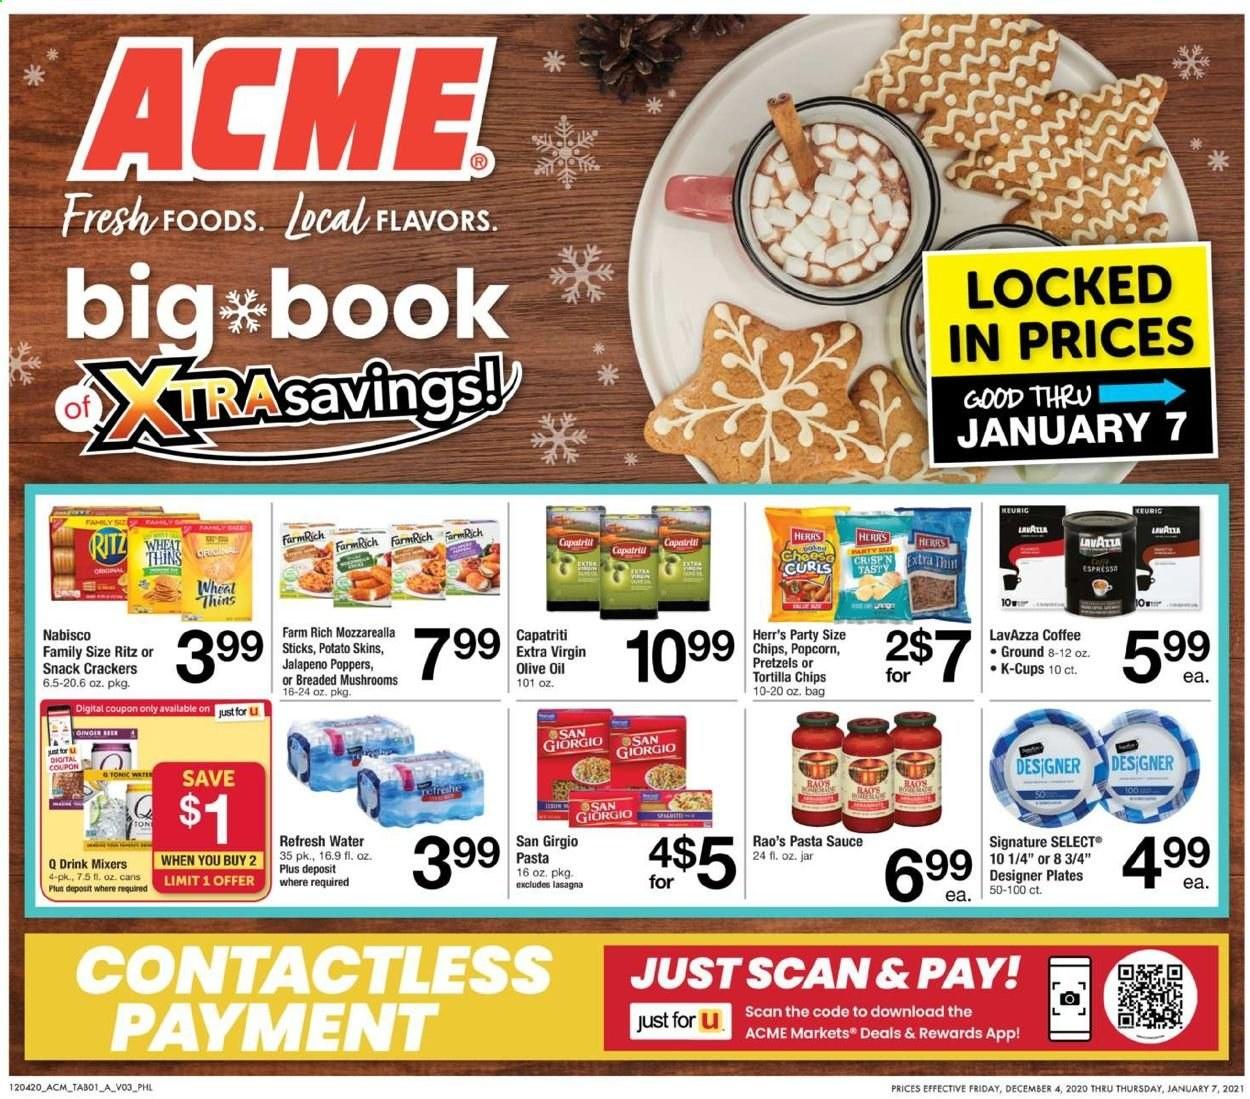 ACME Flyer - 12.04.2020 - 01.07.2021 - Sales products - pretzels, sauce, cracker, crackers, tortilla chips, chips, snack, pop corn, pasta, jalapeño, pasta sauce, extra virgin olive oil, olive oil, tonic, water, coffee, plate, jar, bag. Page 1.